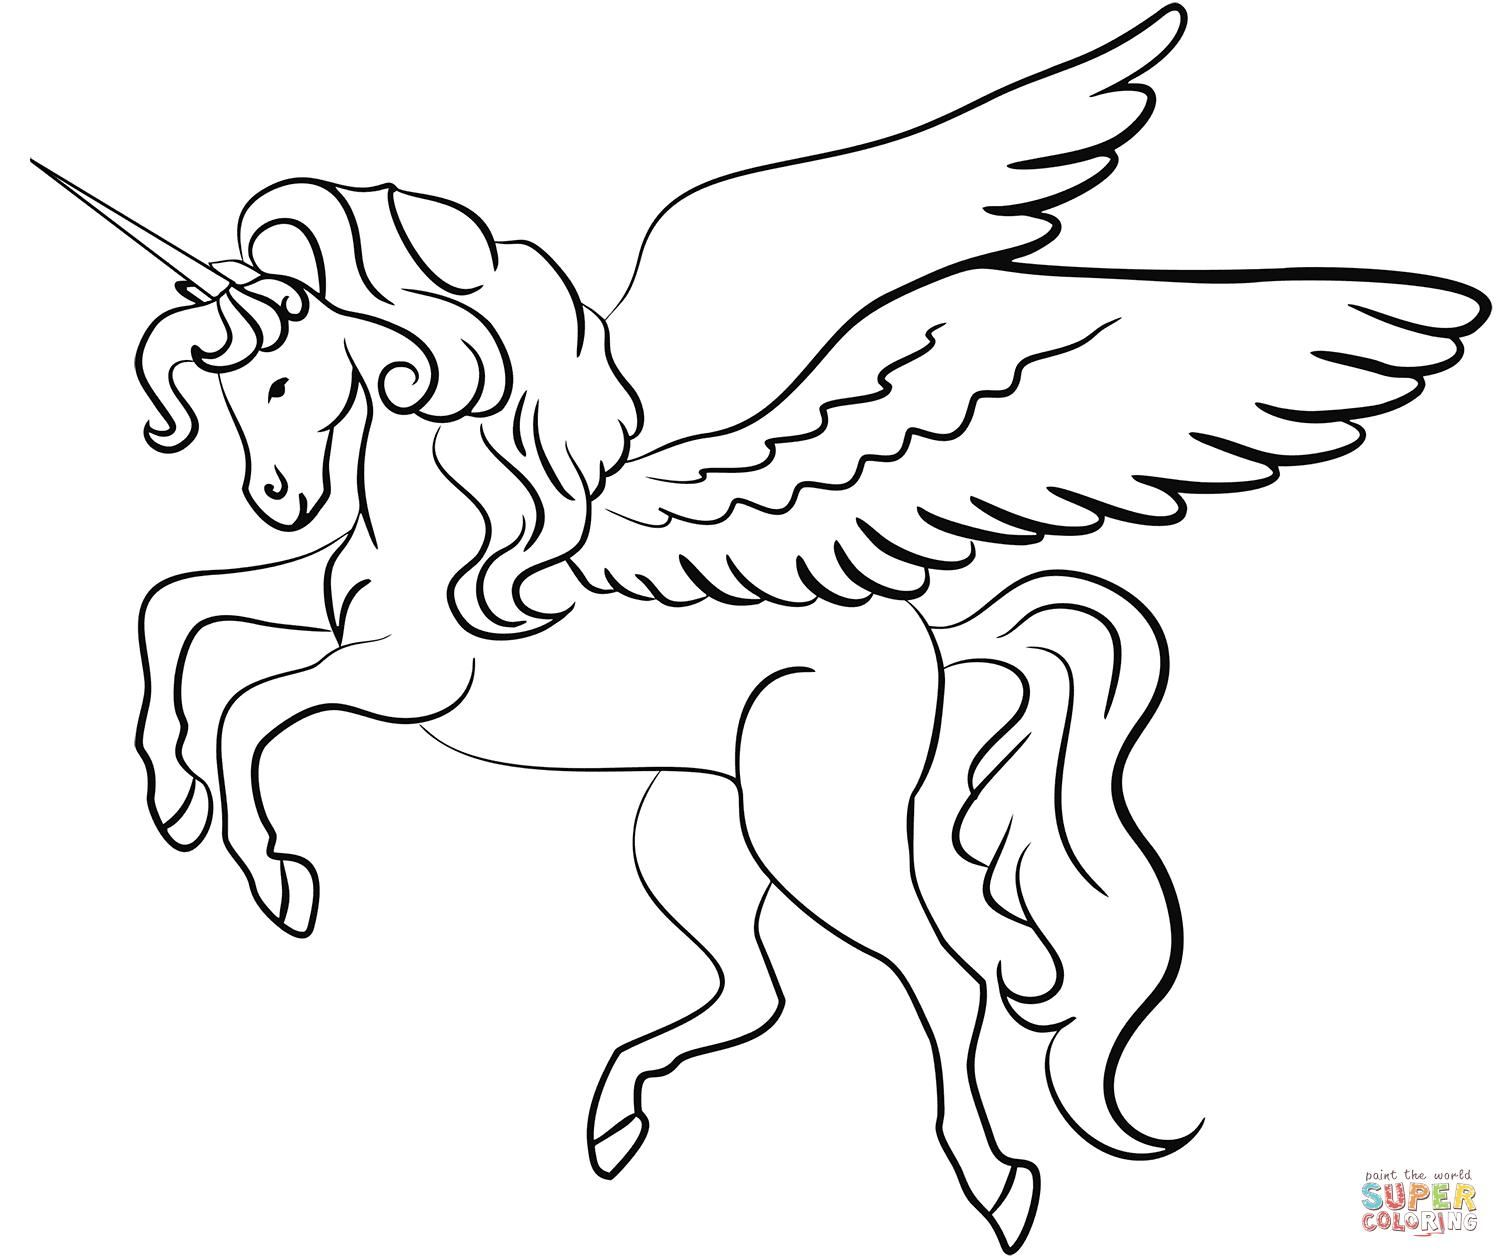 42 Coloring Page Unicorn With Wings In 2020 Unicorn Coloring Pages Coloring Pages Unicorn Images